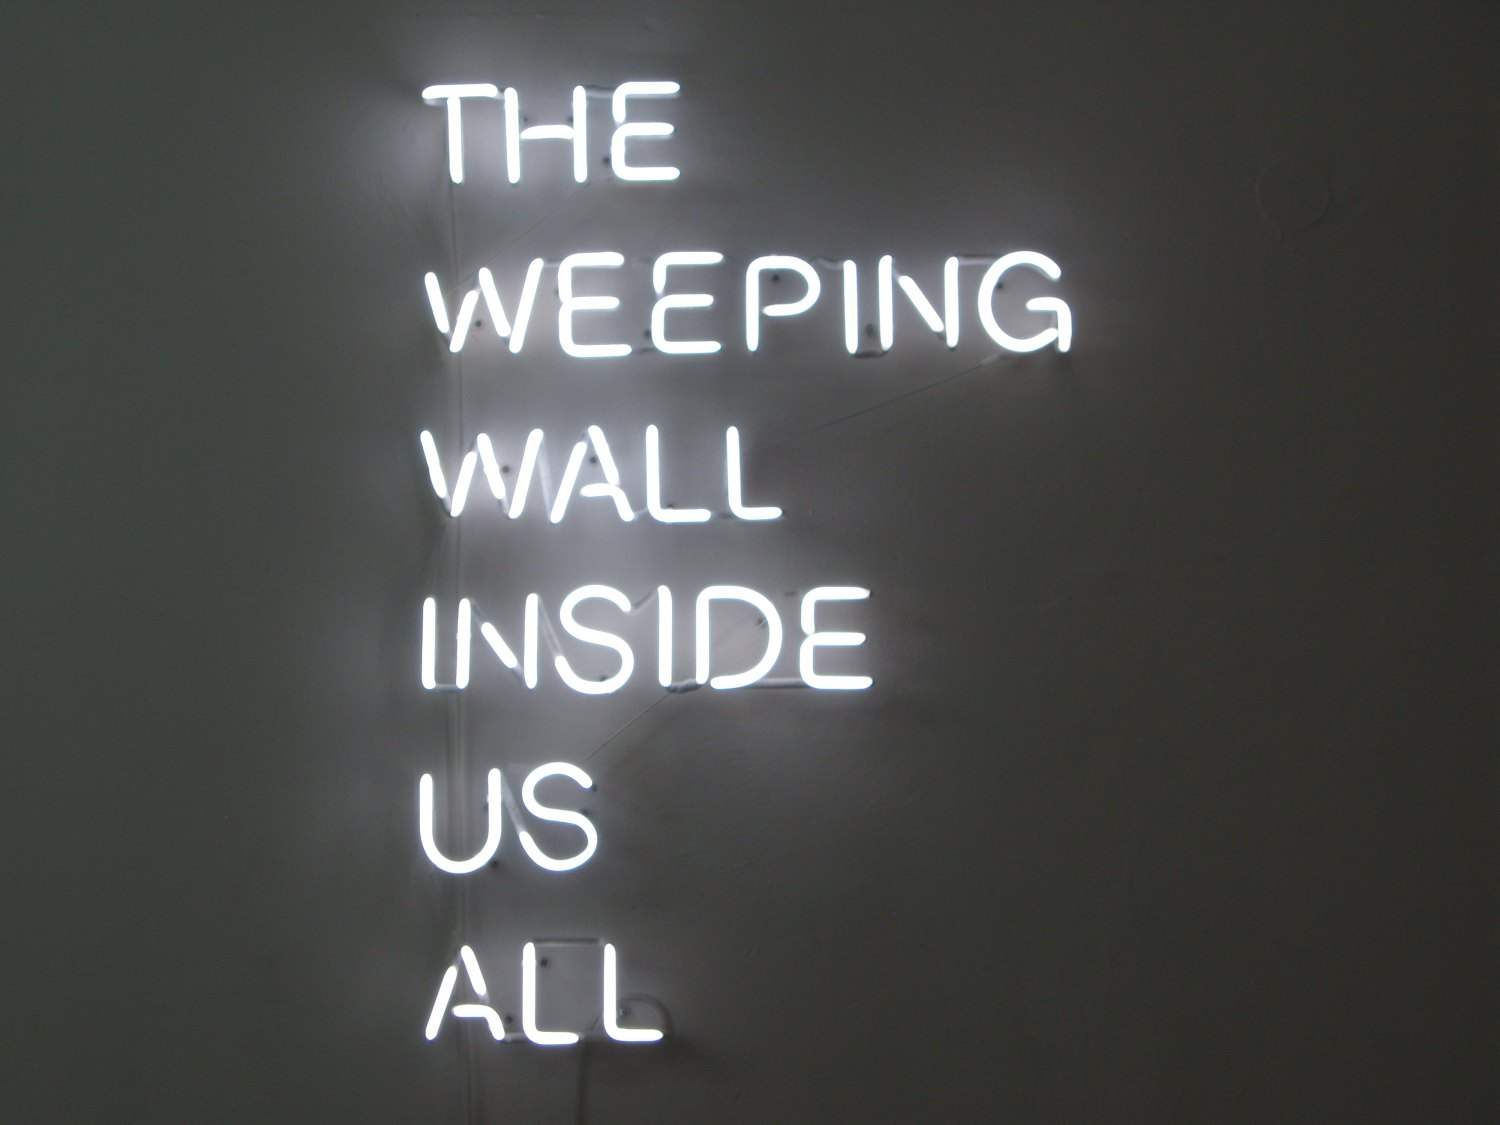 Karl Holmqvist & Claire Fontaine The Weeping Wall Inside Us All, 2009 Neon, 116 × 80 cm